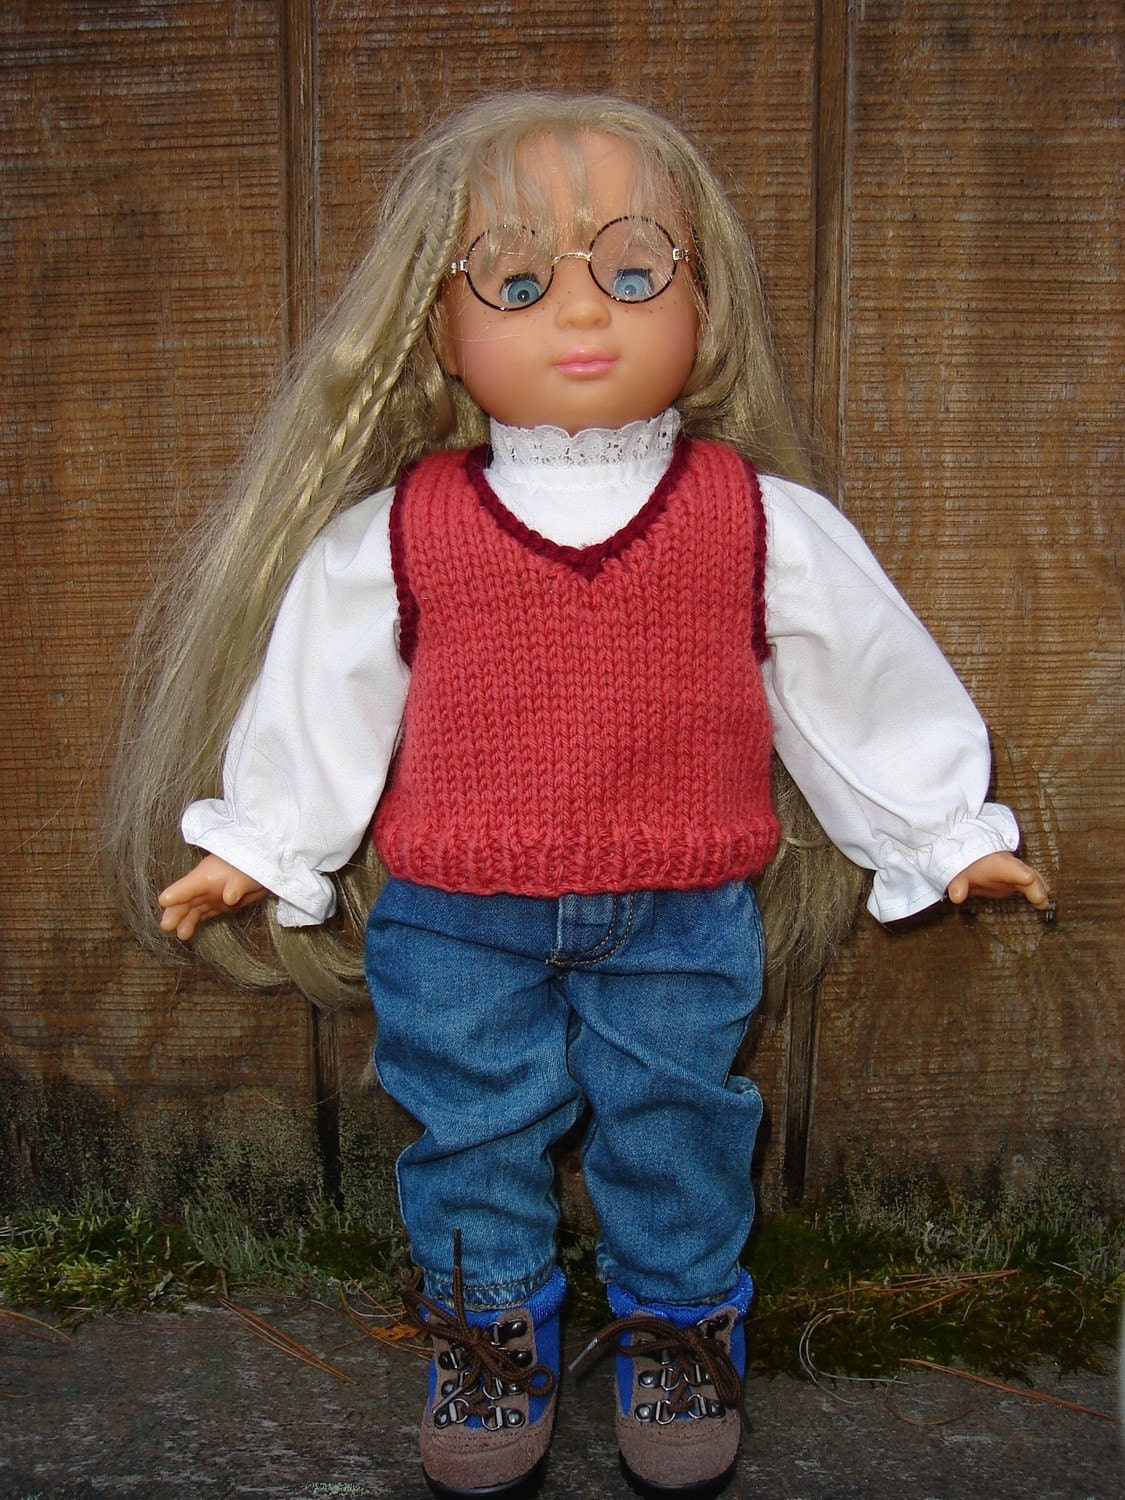 Doll Vest Knitting Pattern : Items similar to 18 inch Doll Knitting Pattern V-Neck Vest ...